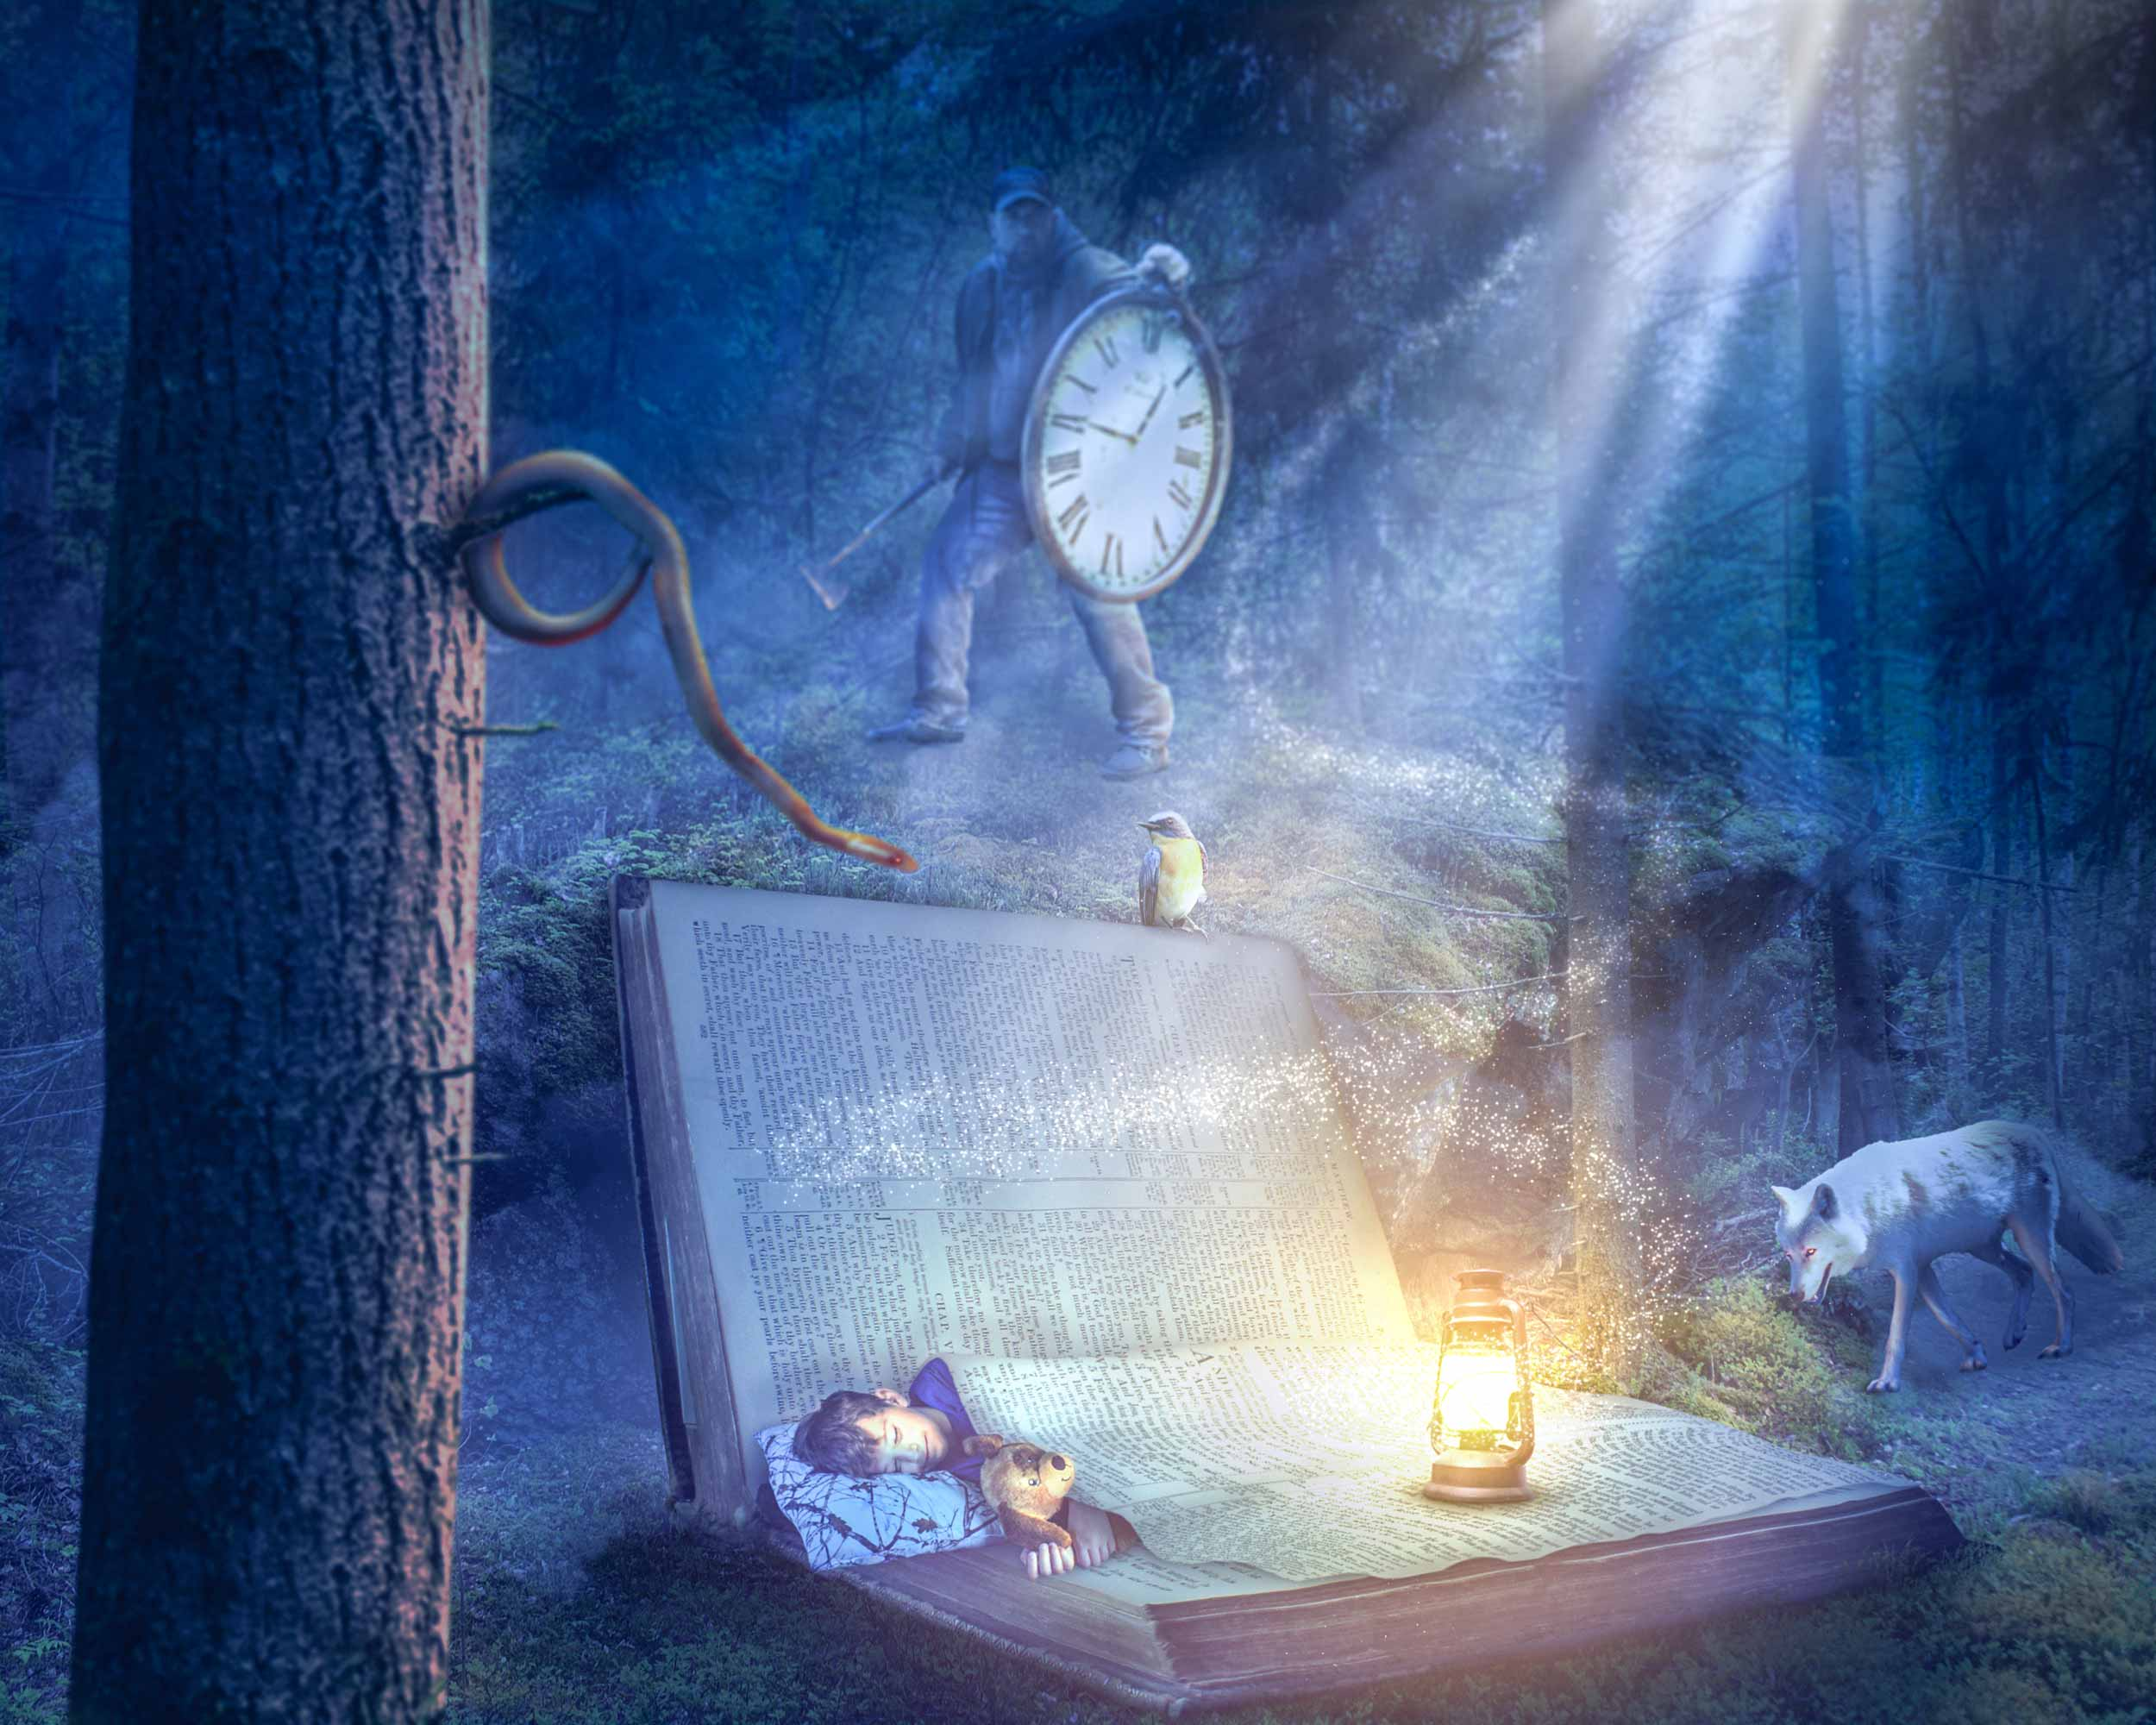 A young boy is in a peaceful sleep in a Bible as a snake, a wolf, and a woodsman close in on him.